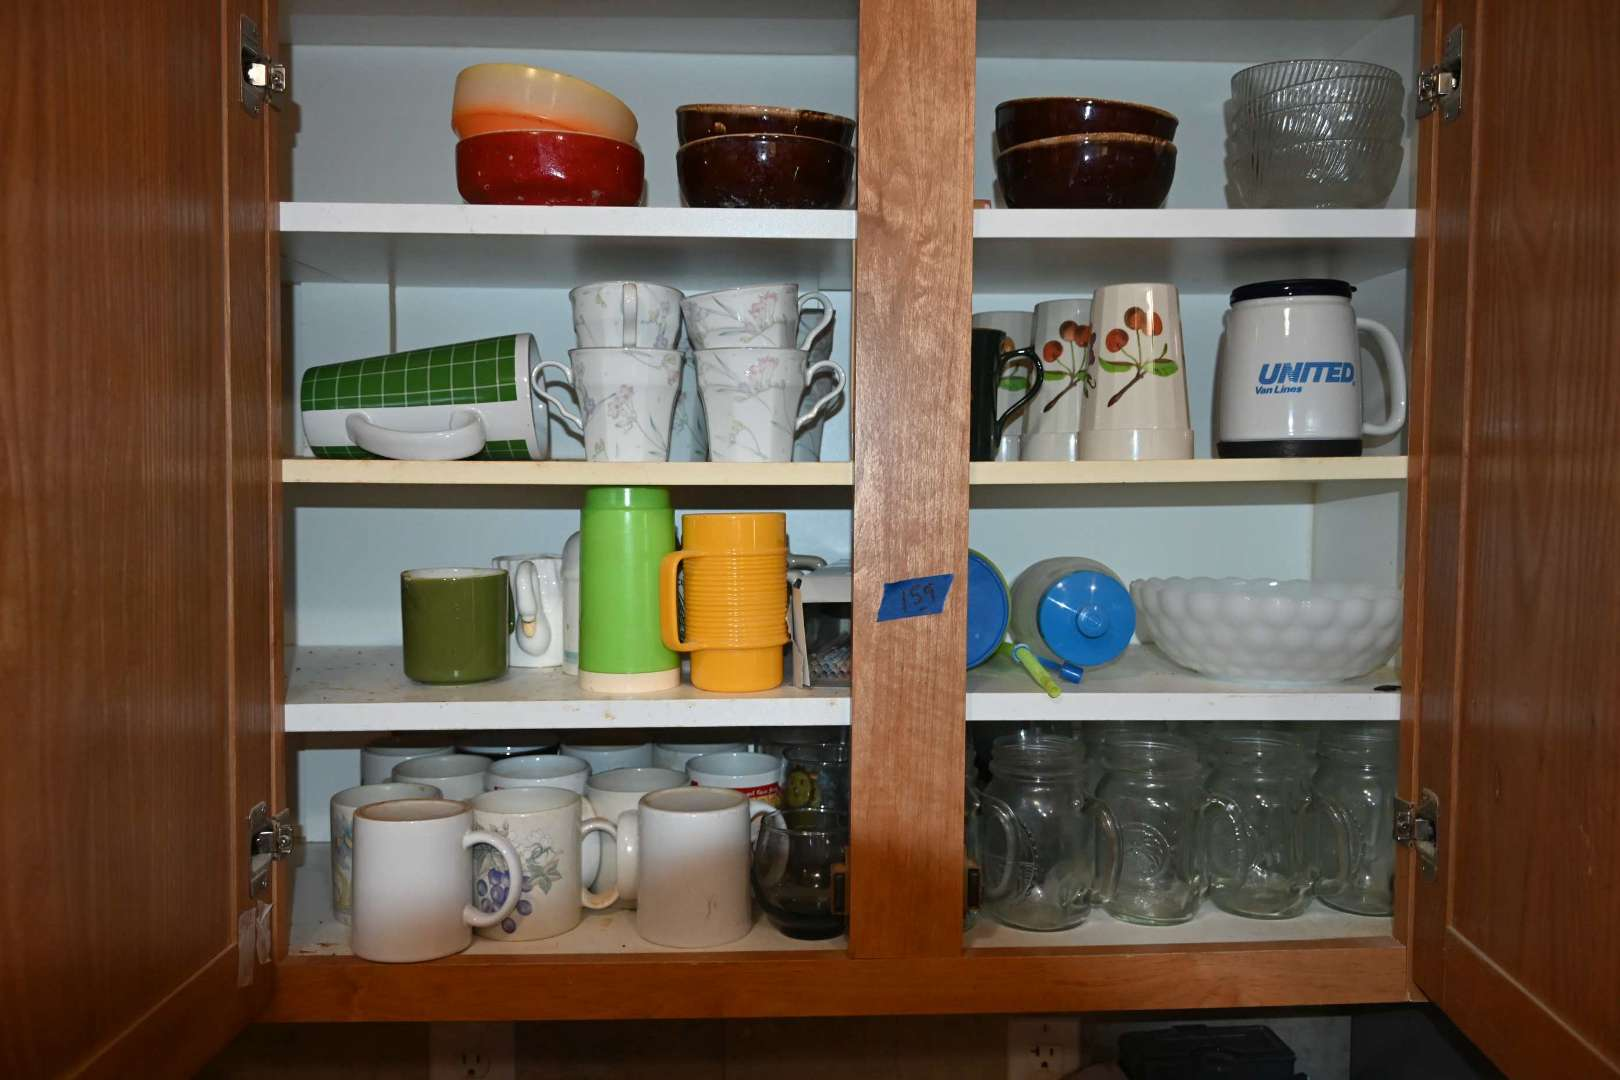 Lot # 159 Contents of right upper kitchen cabinet